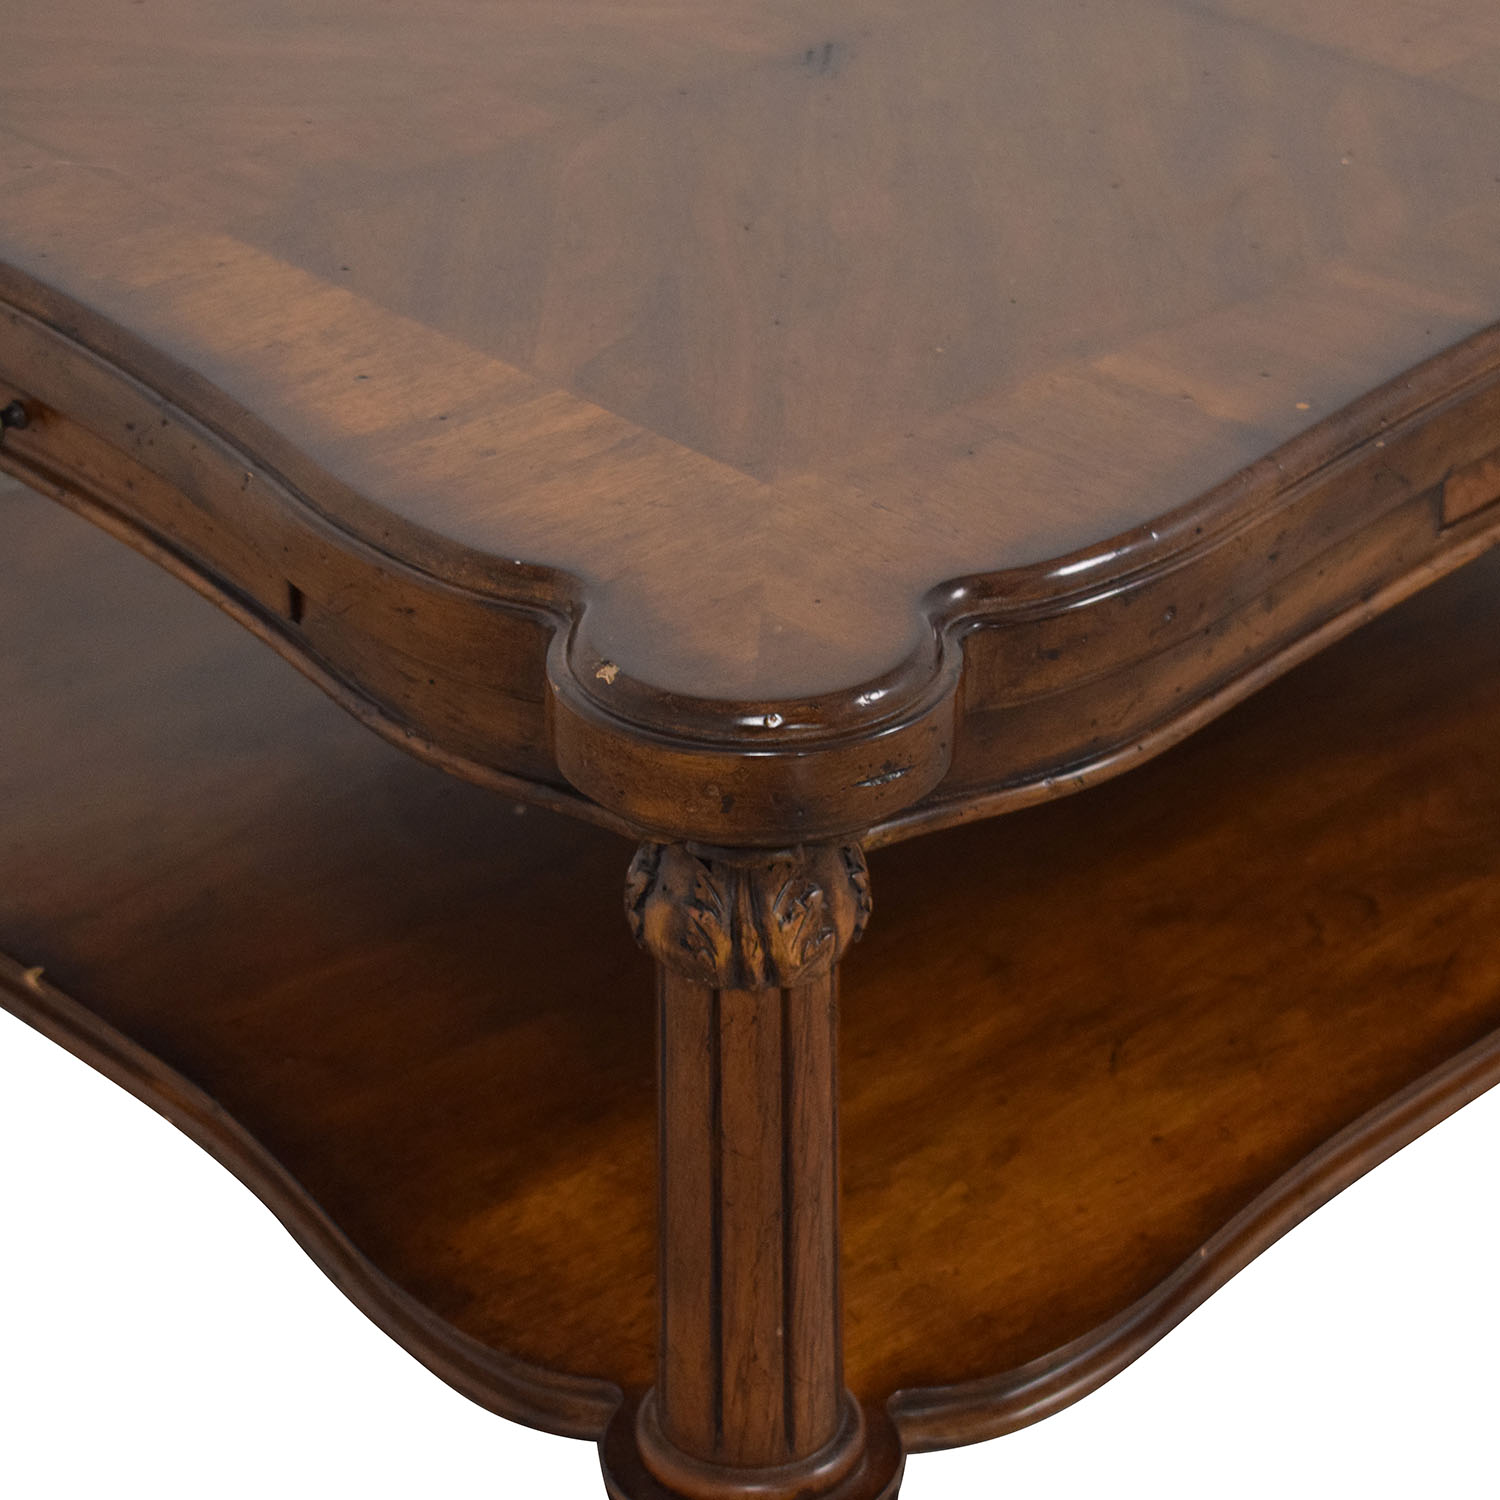 Ethan Allen Ethan Allen Coffee Table with Trays ct